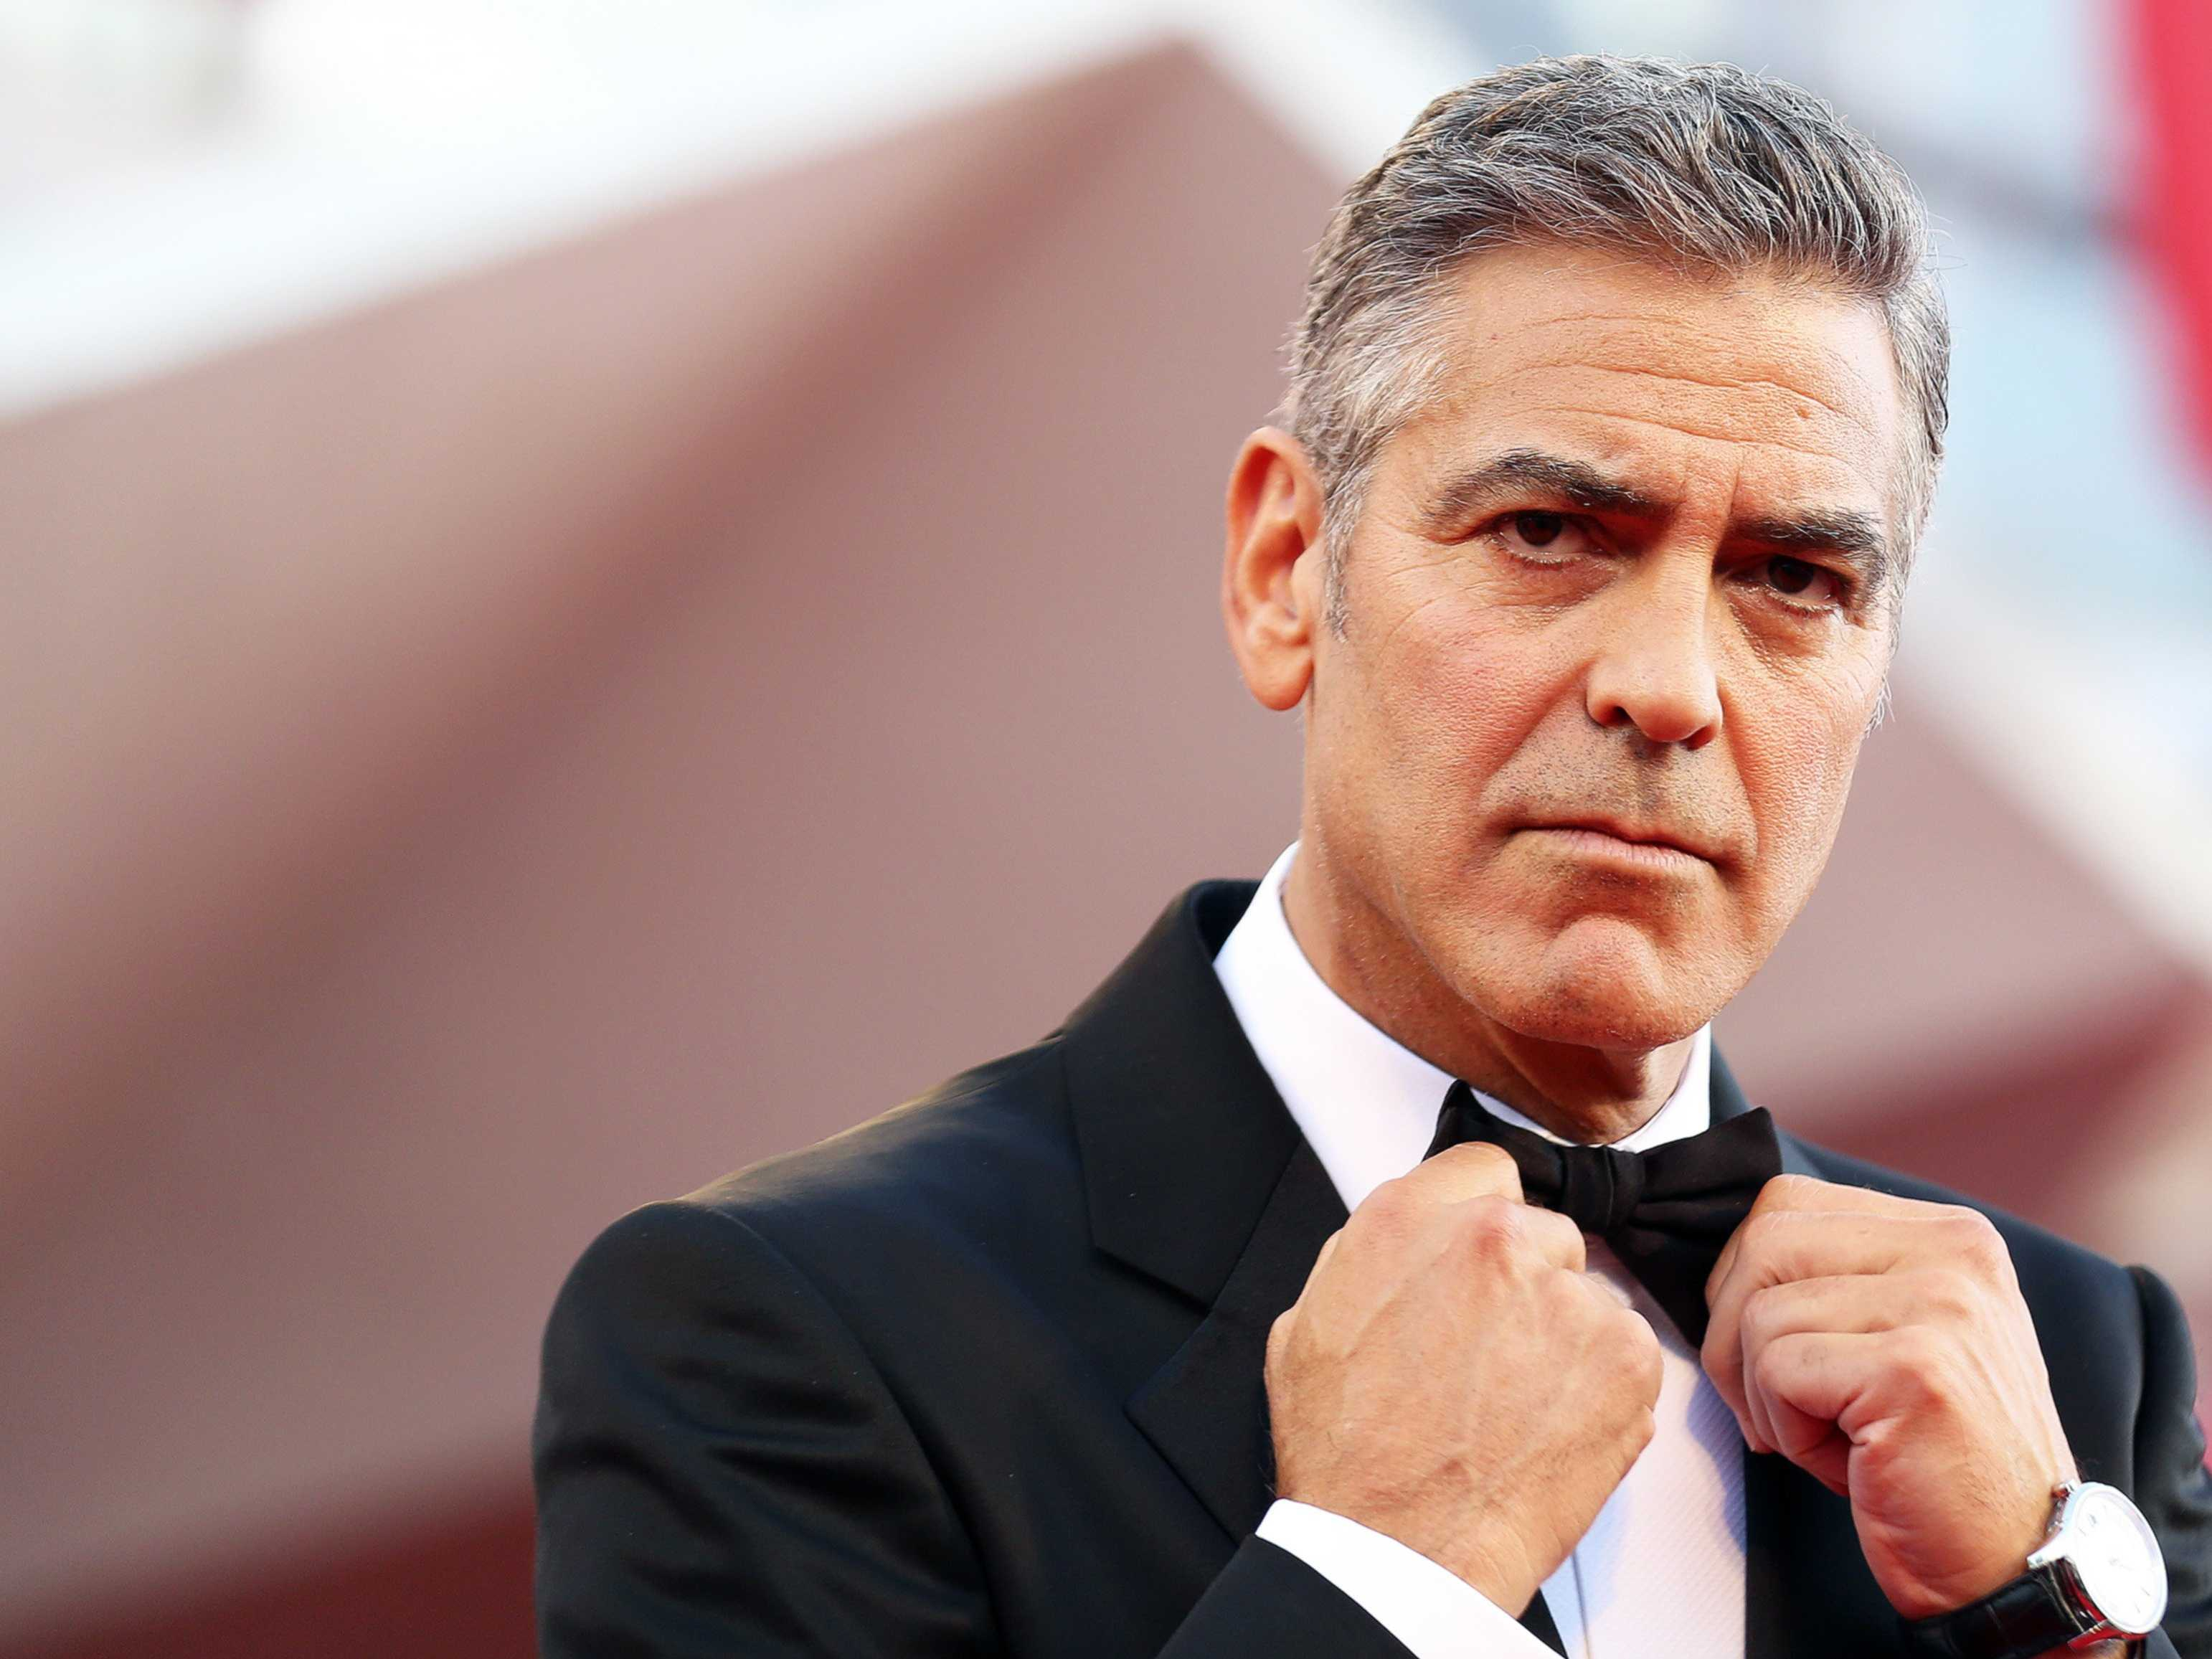 George Clooney Wallpapers   Top George Clooney Backgrounds 3084x2313